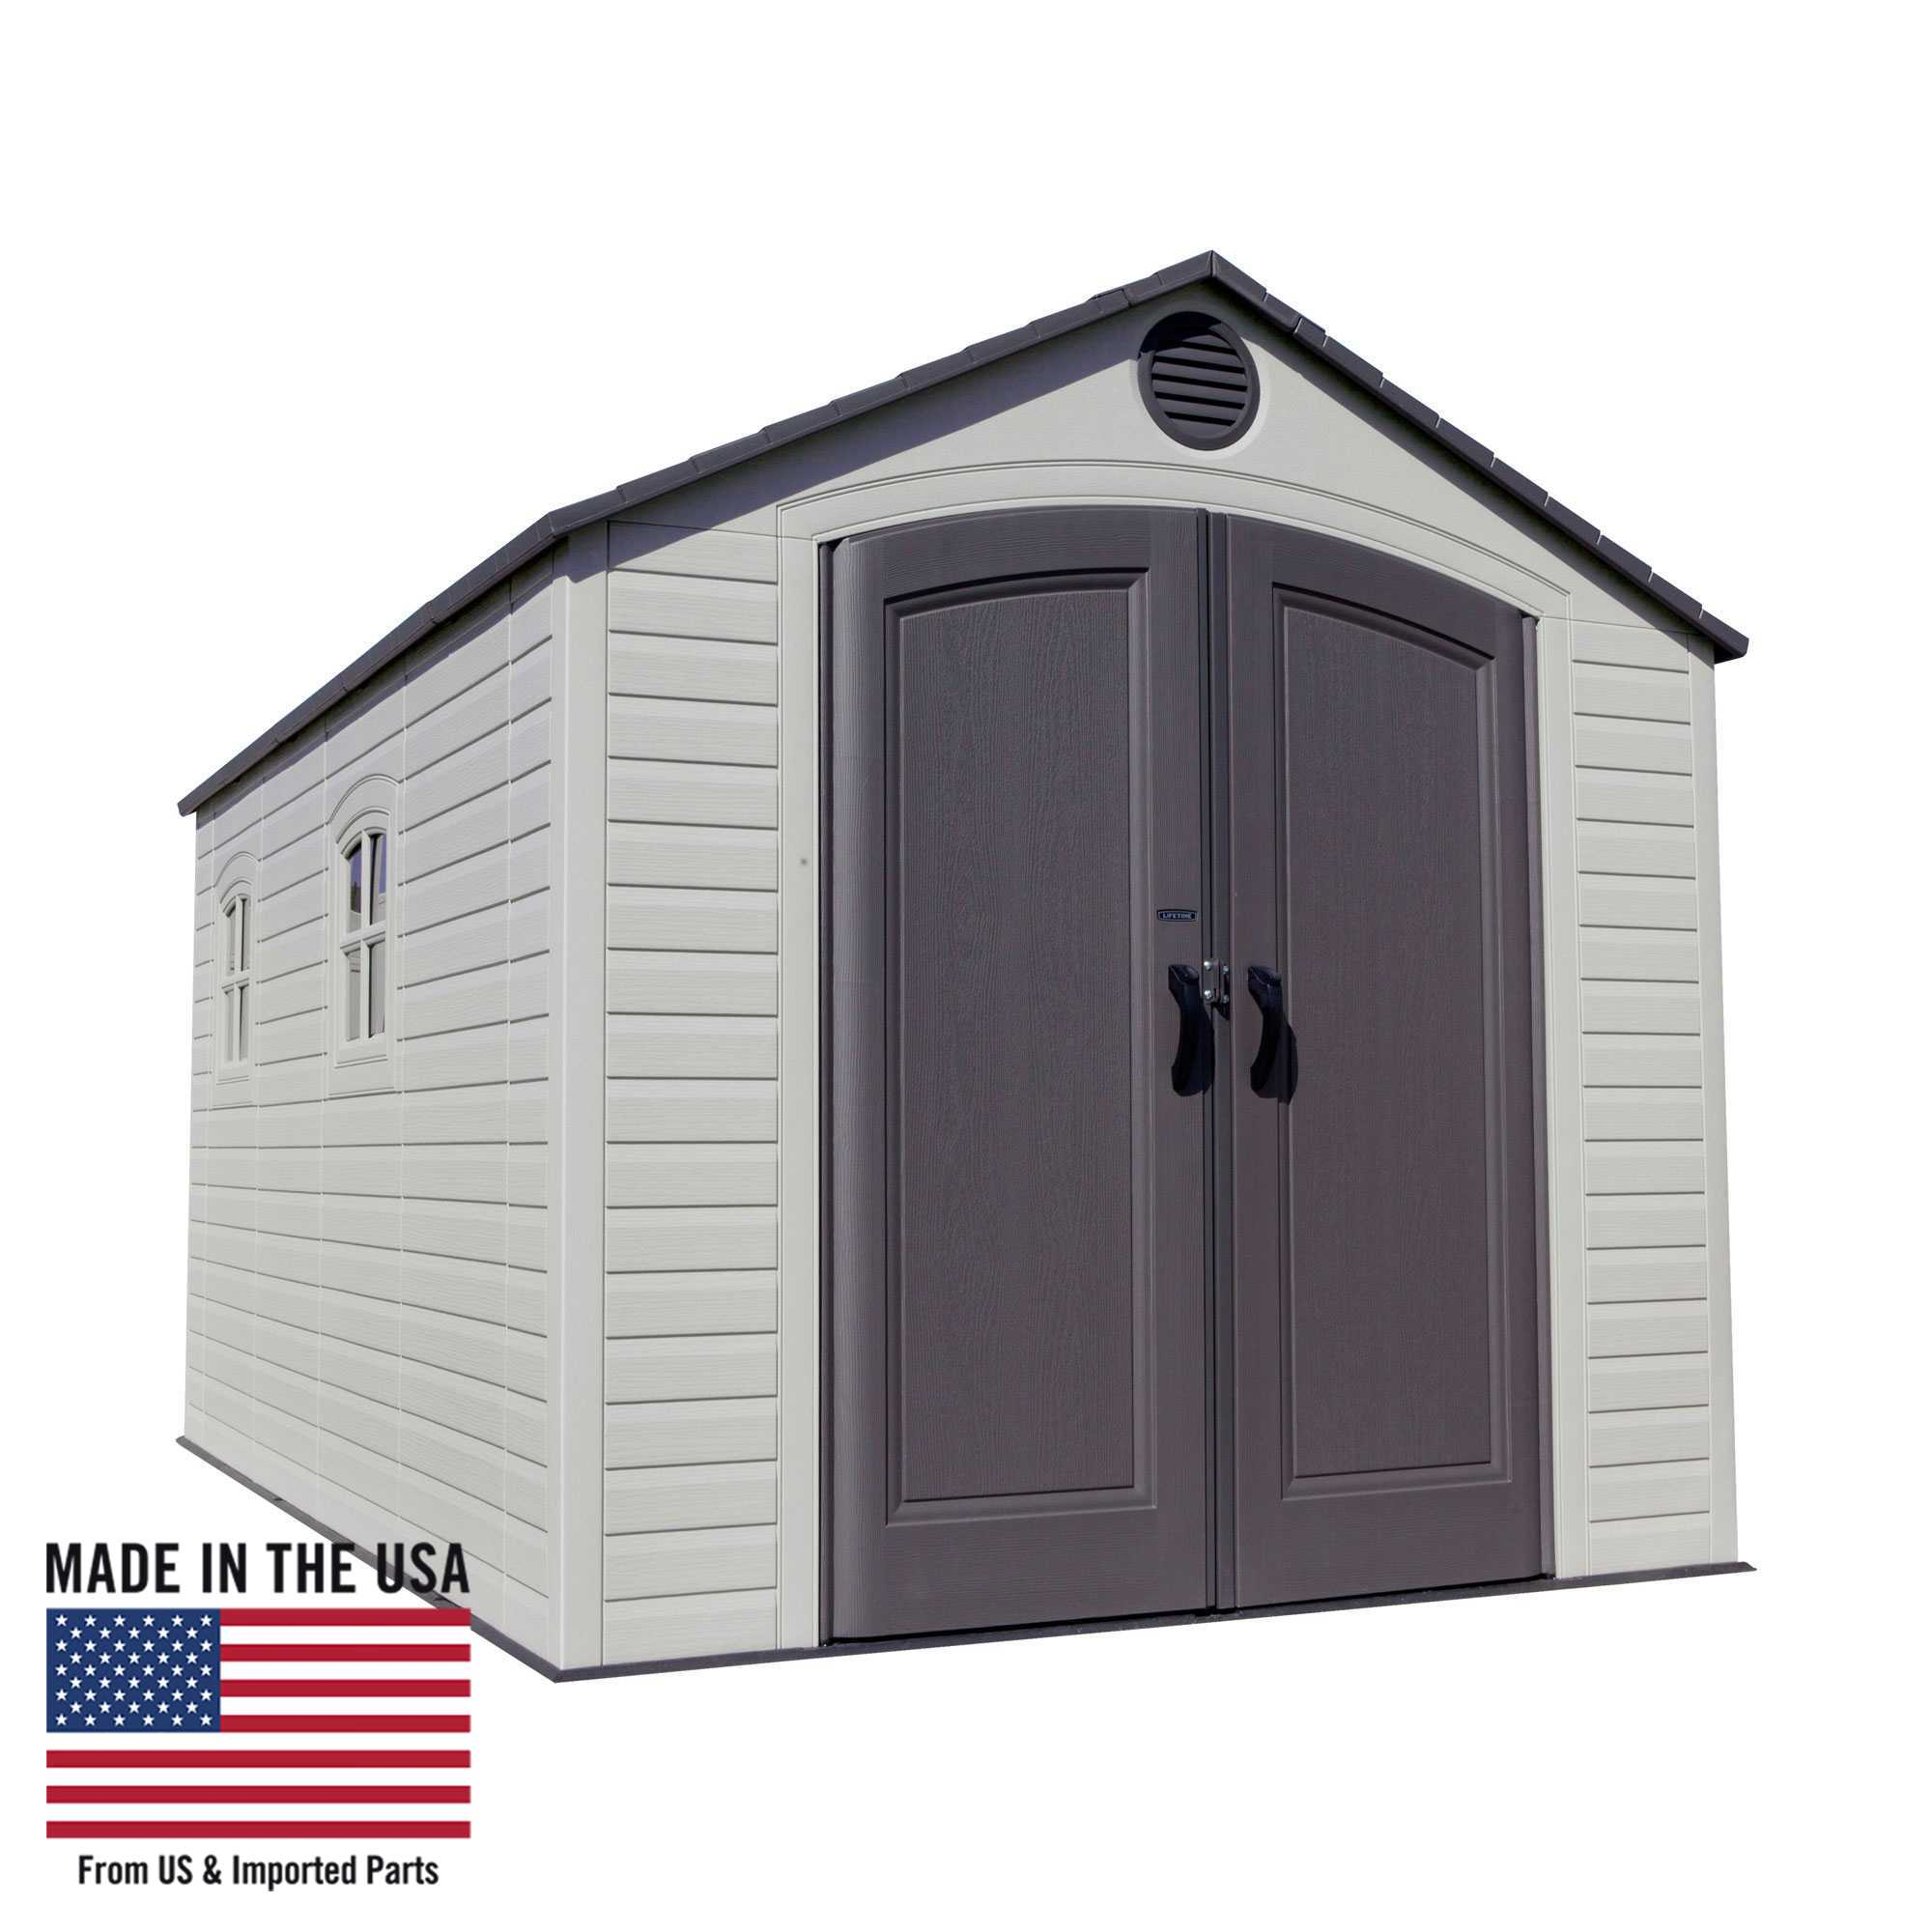 Lifetime 8 Ft. x 15 Ft. Outdoor Storage Shed